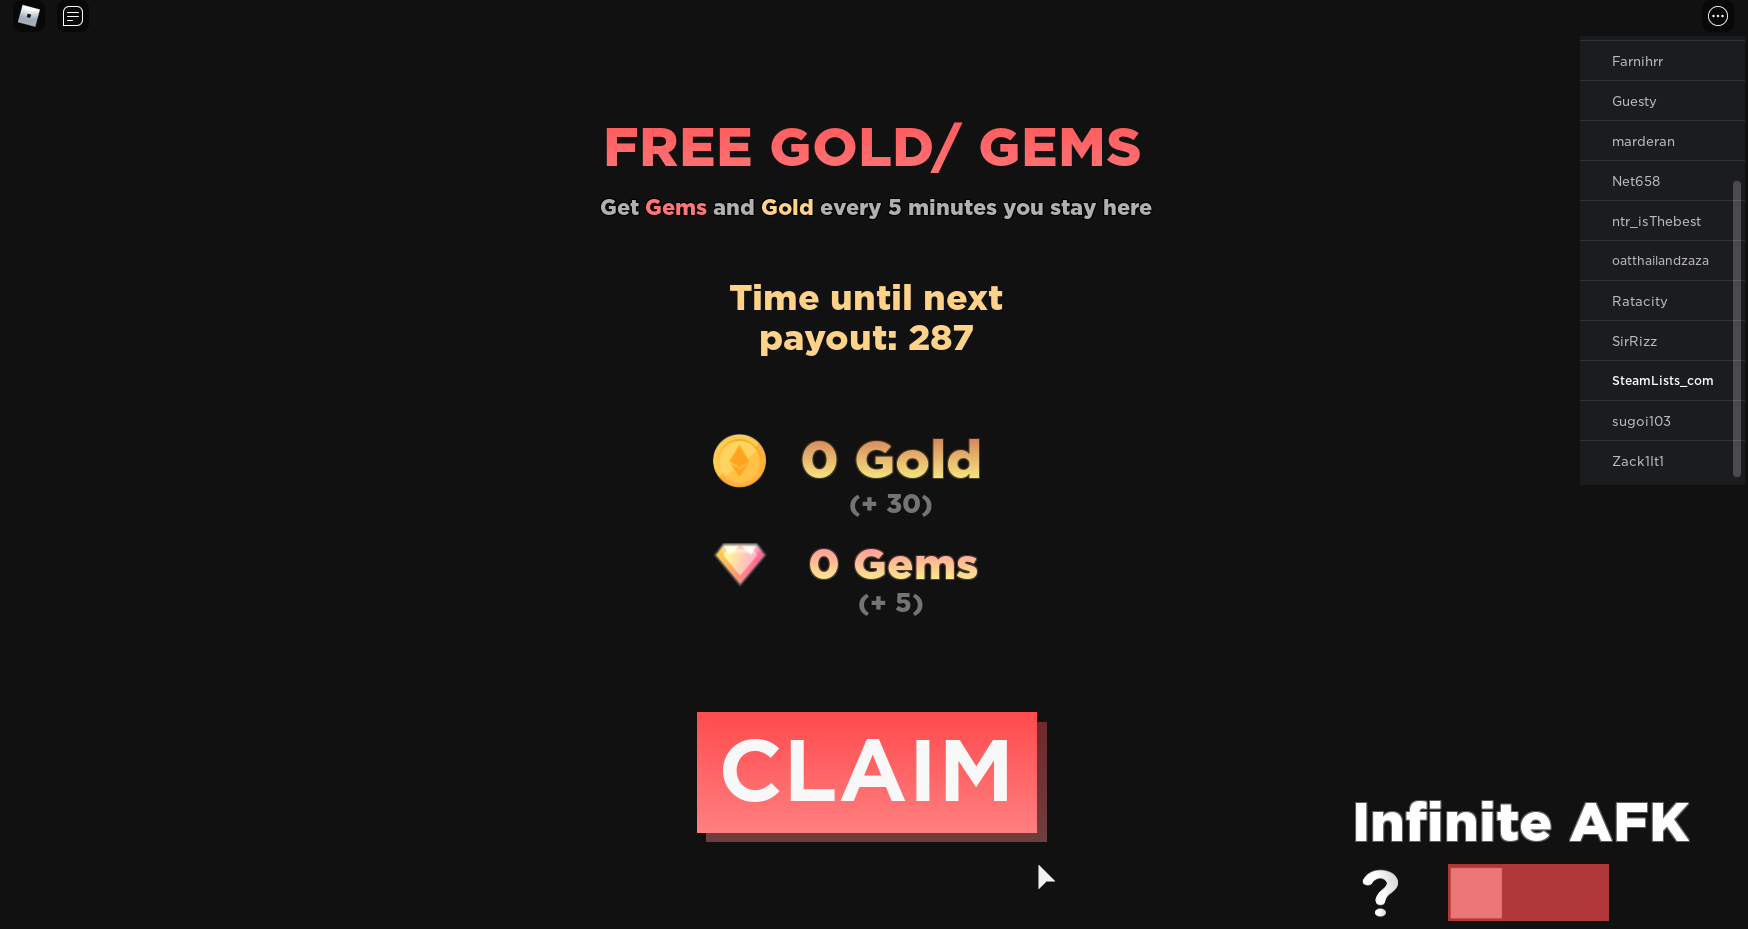 Roblox – Anime Dimensions How to get free Gems and Gold while AFK? 2 - steamlists.com